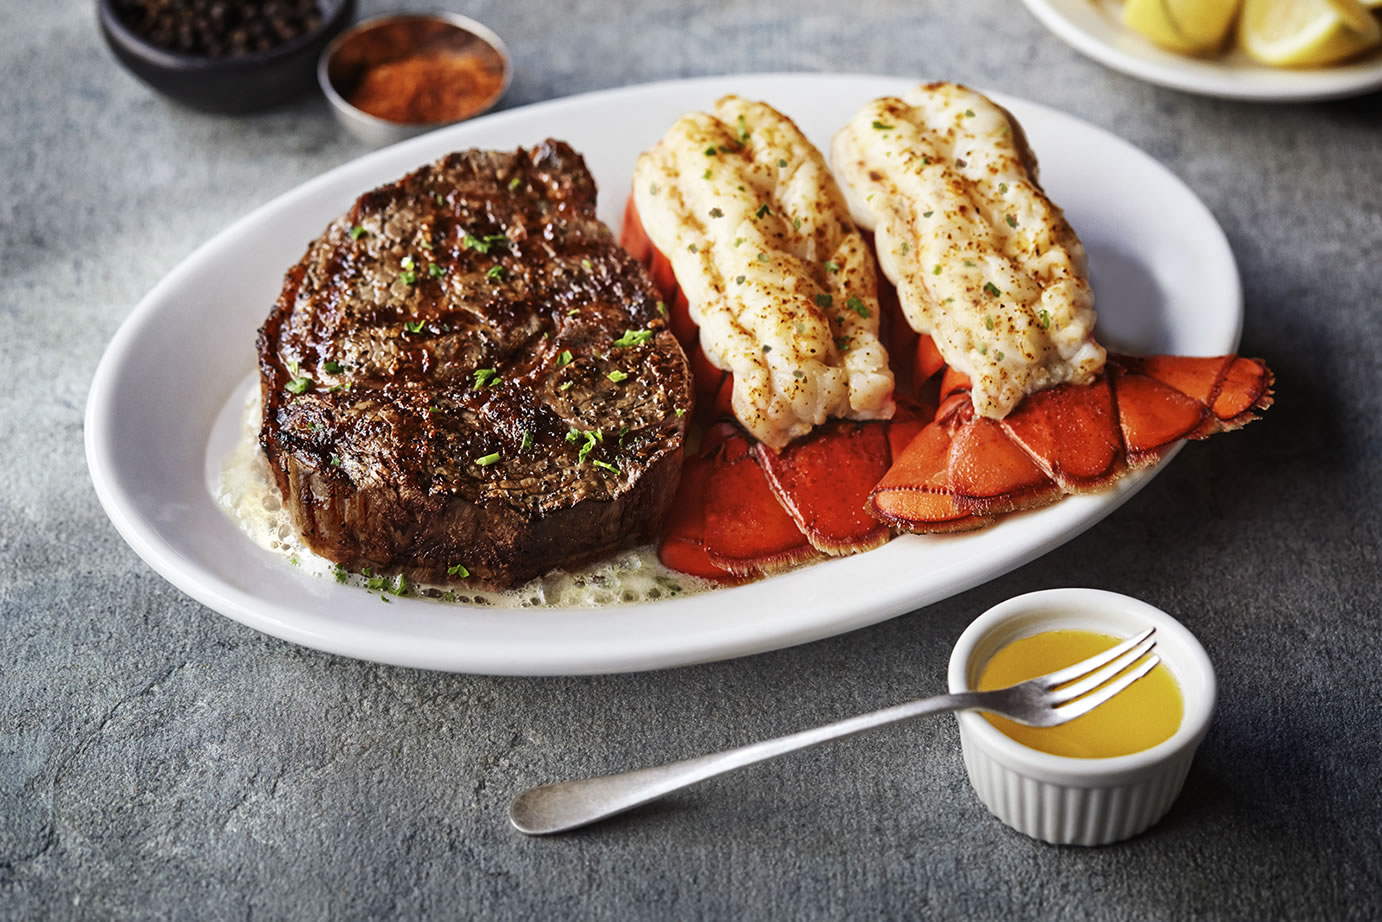 16 oz. Ribeye and Twin Lobster Tails